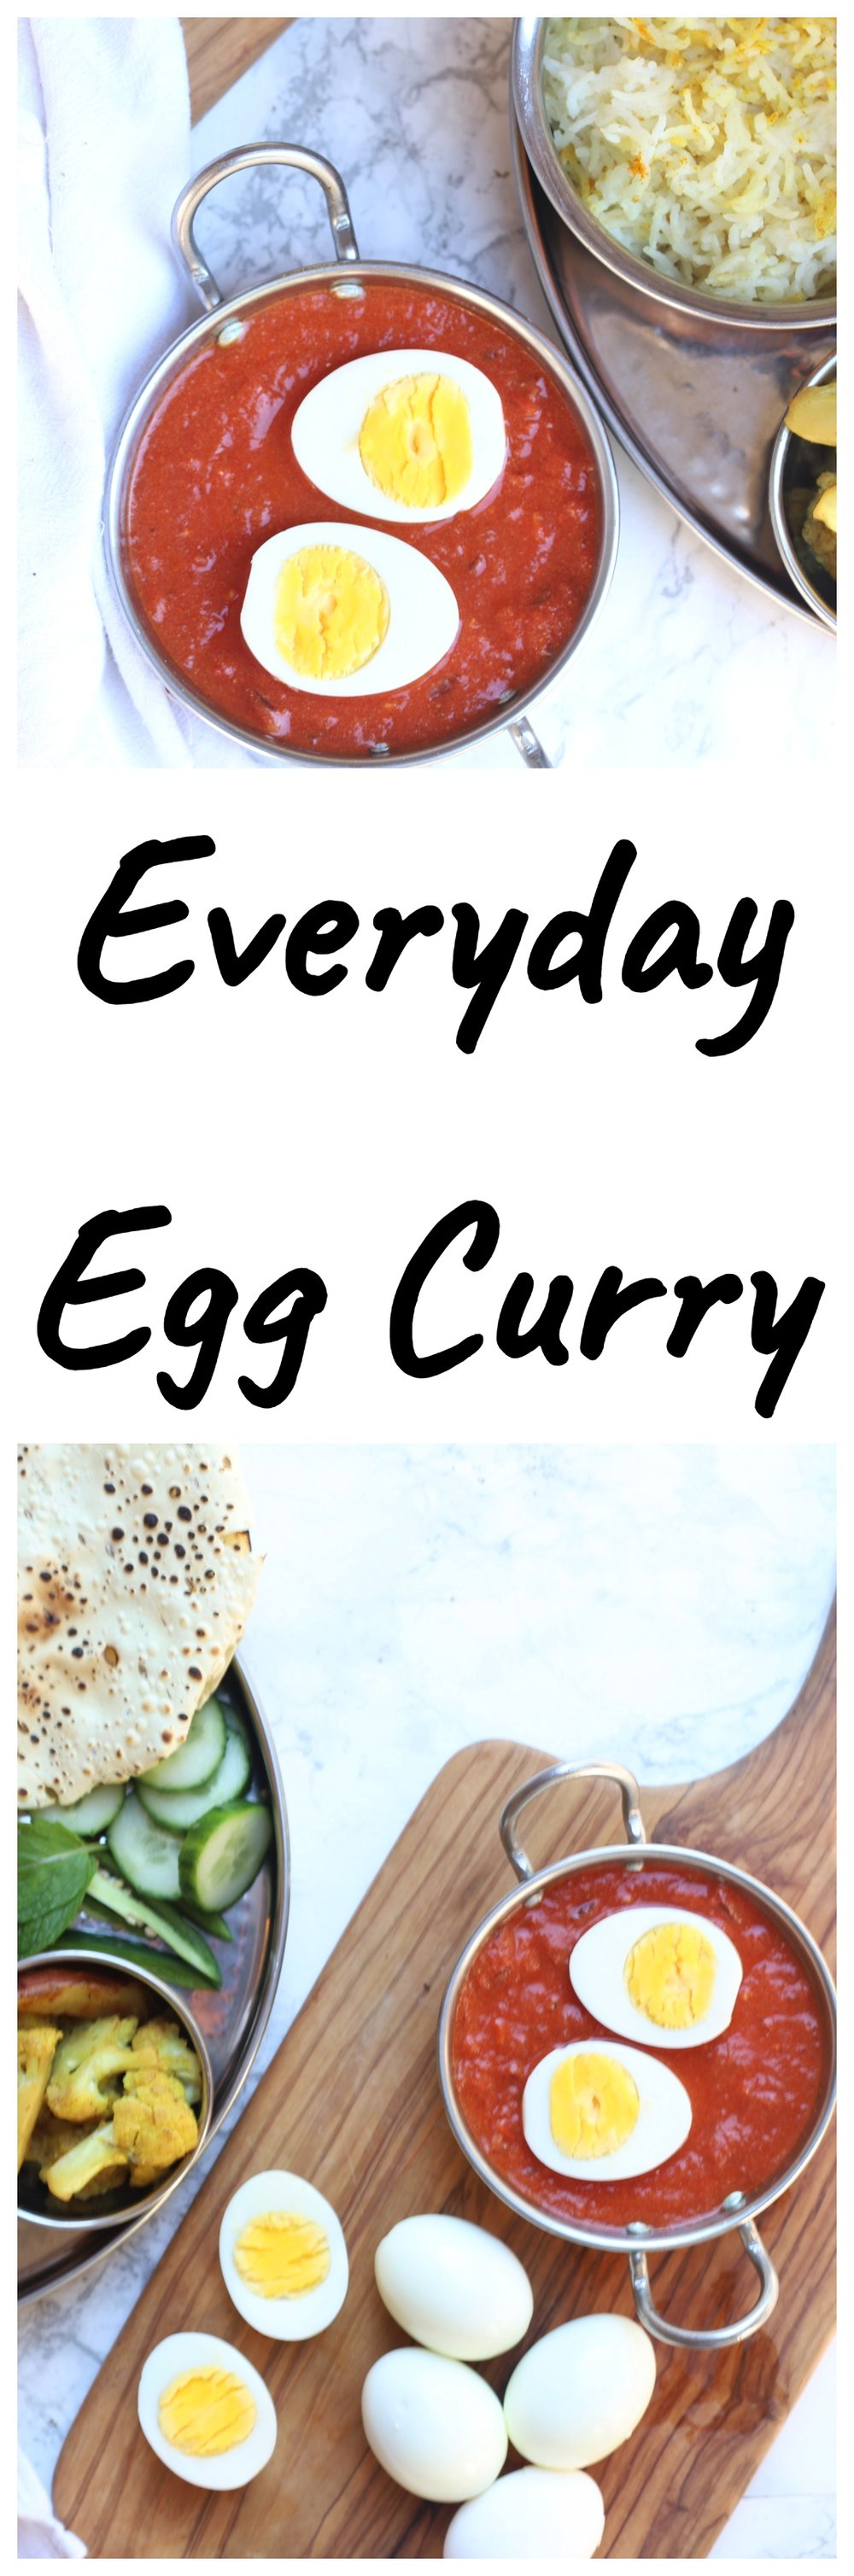 Everyday Egg Curry